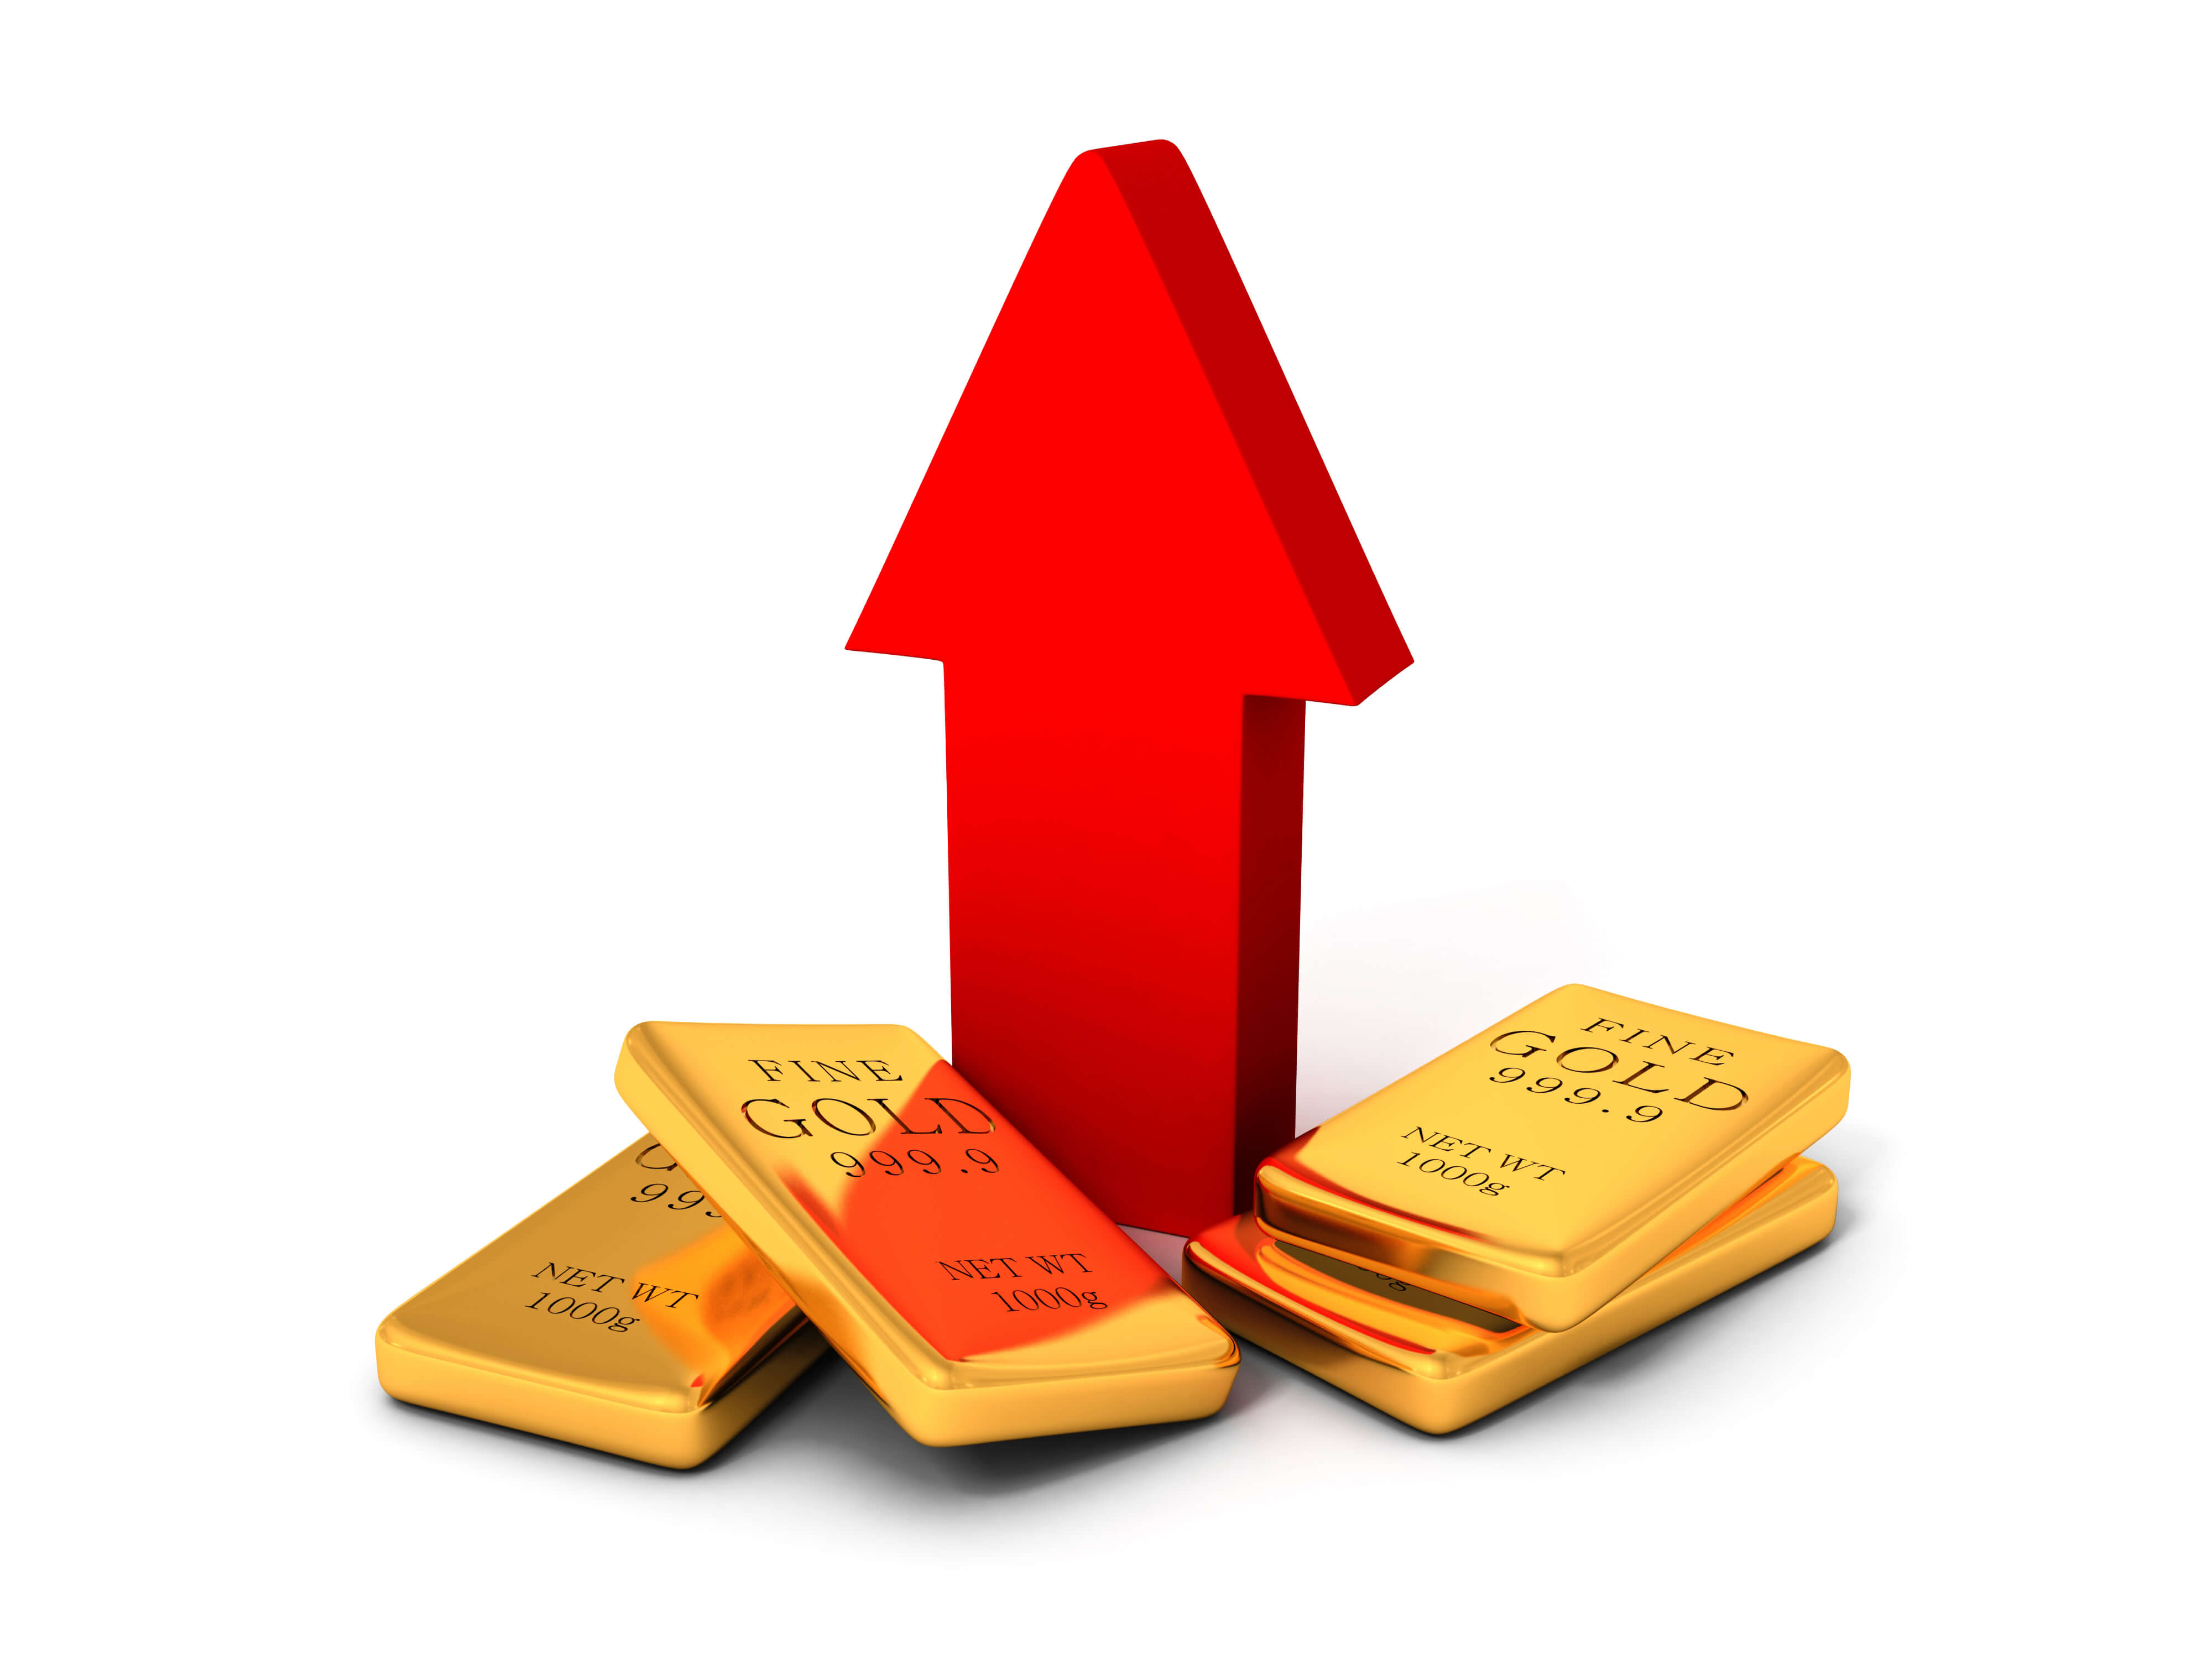 Spot gold prices during the geopolitical tensions